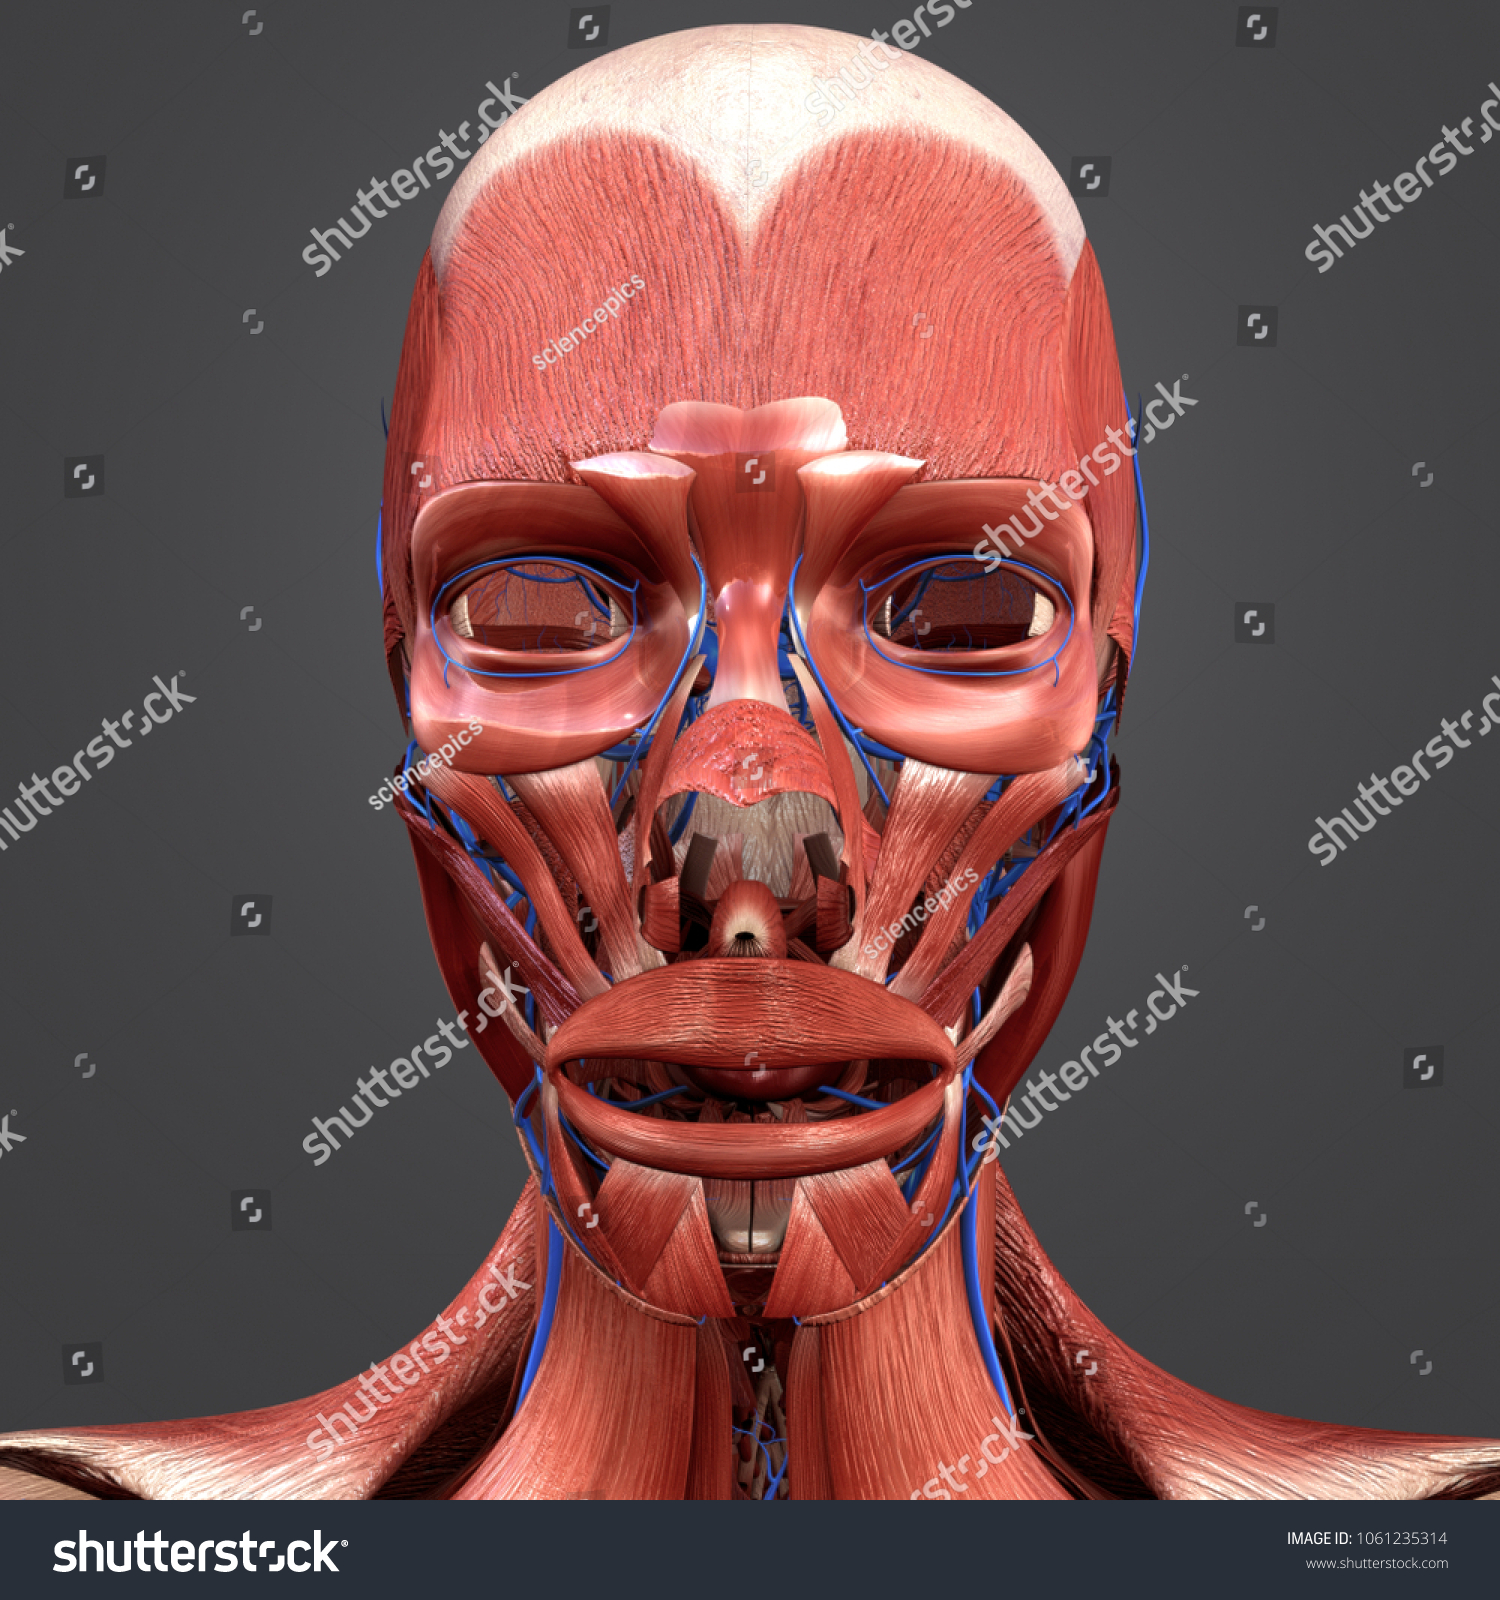 Facial Muscles Anatomy Veins 3 D Illustration Stock Illustration ...